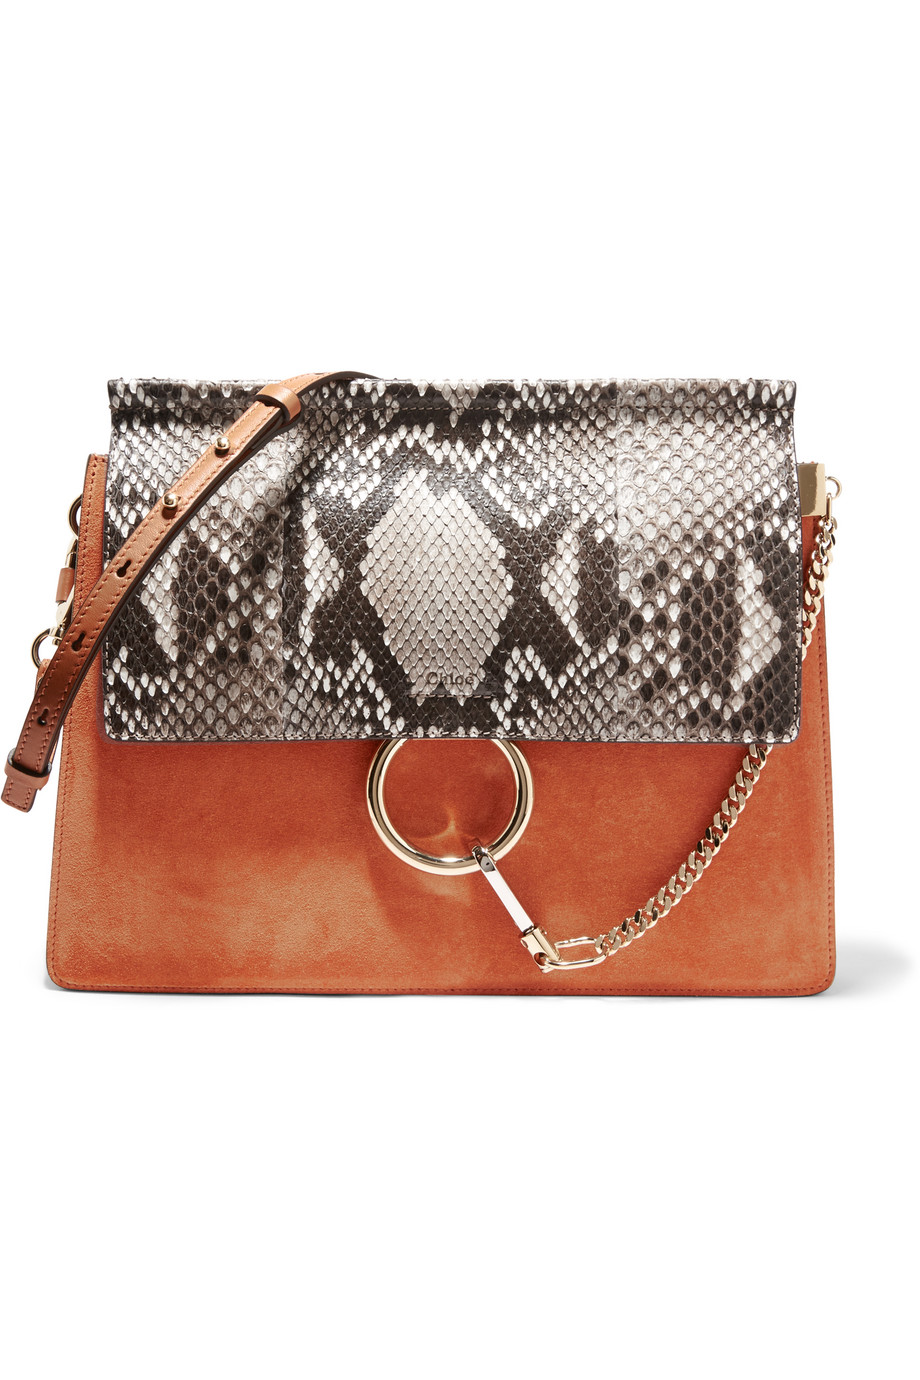 Chloé Faye Medium Python, Suede and Leather Shoulder Bag, Tan/Gray, Women's